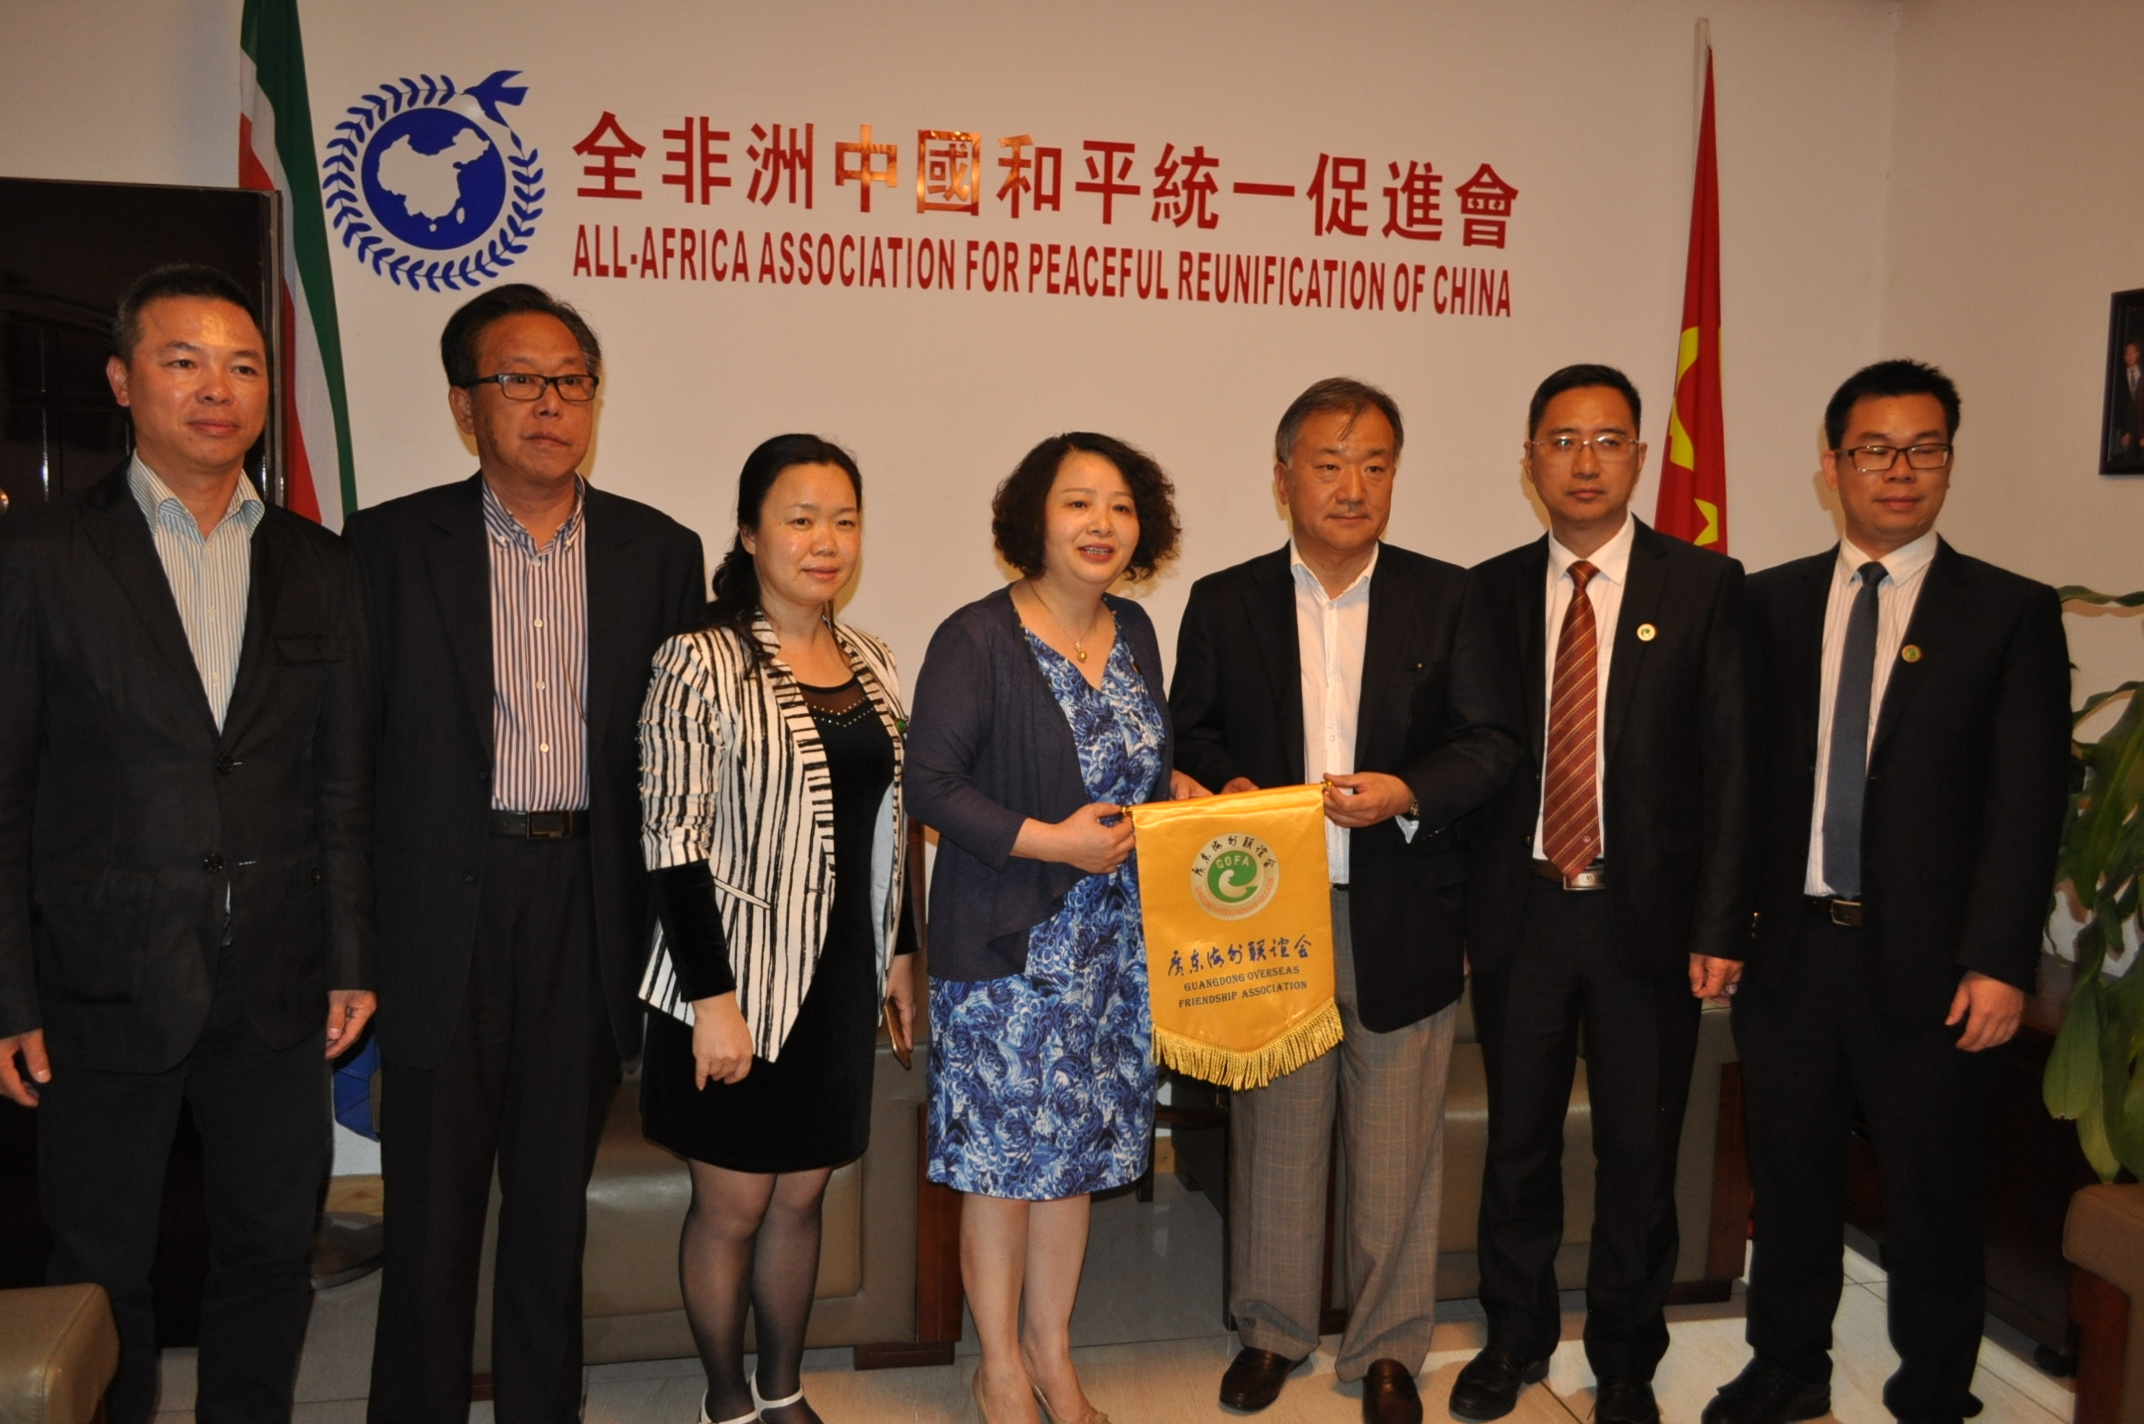 Delegates share their joy withHuanchun Li, Vice President of Guangdong Overseas Friendship Association.